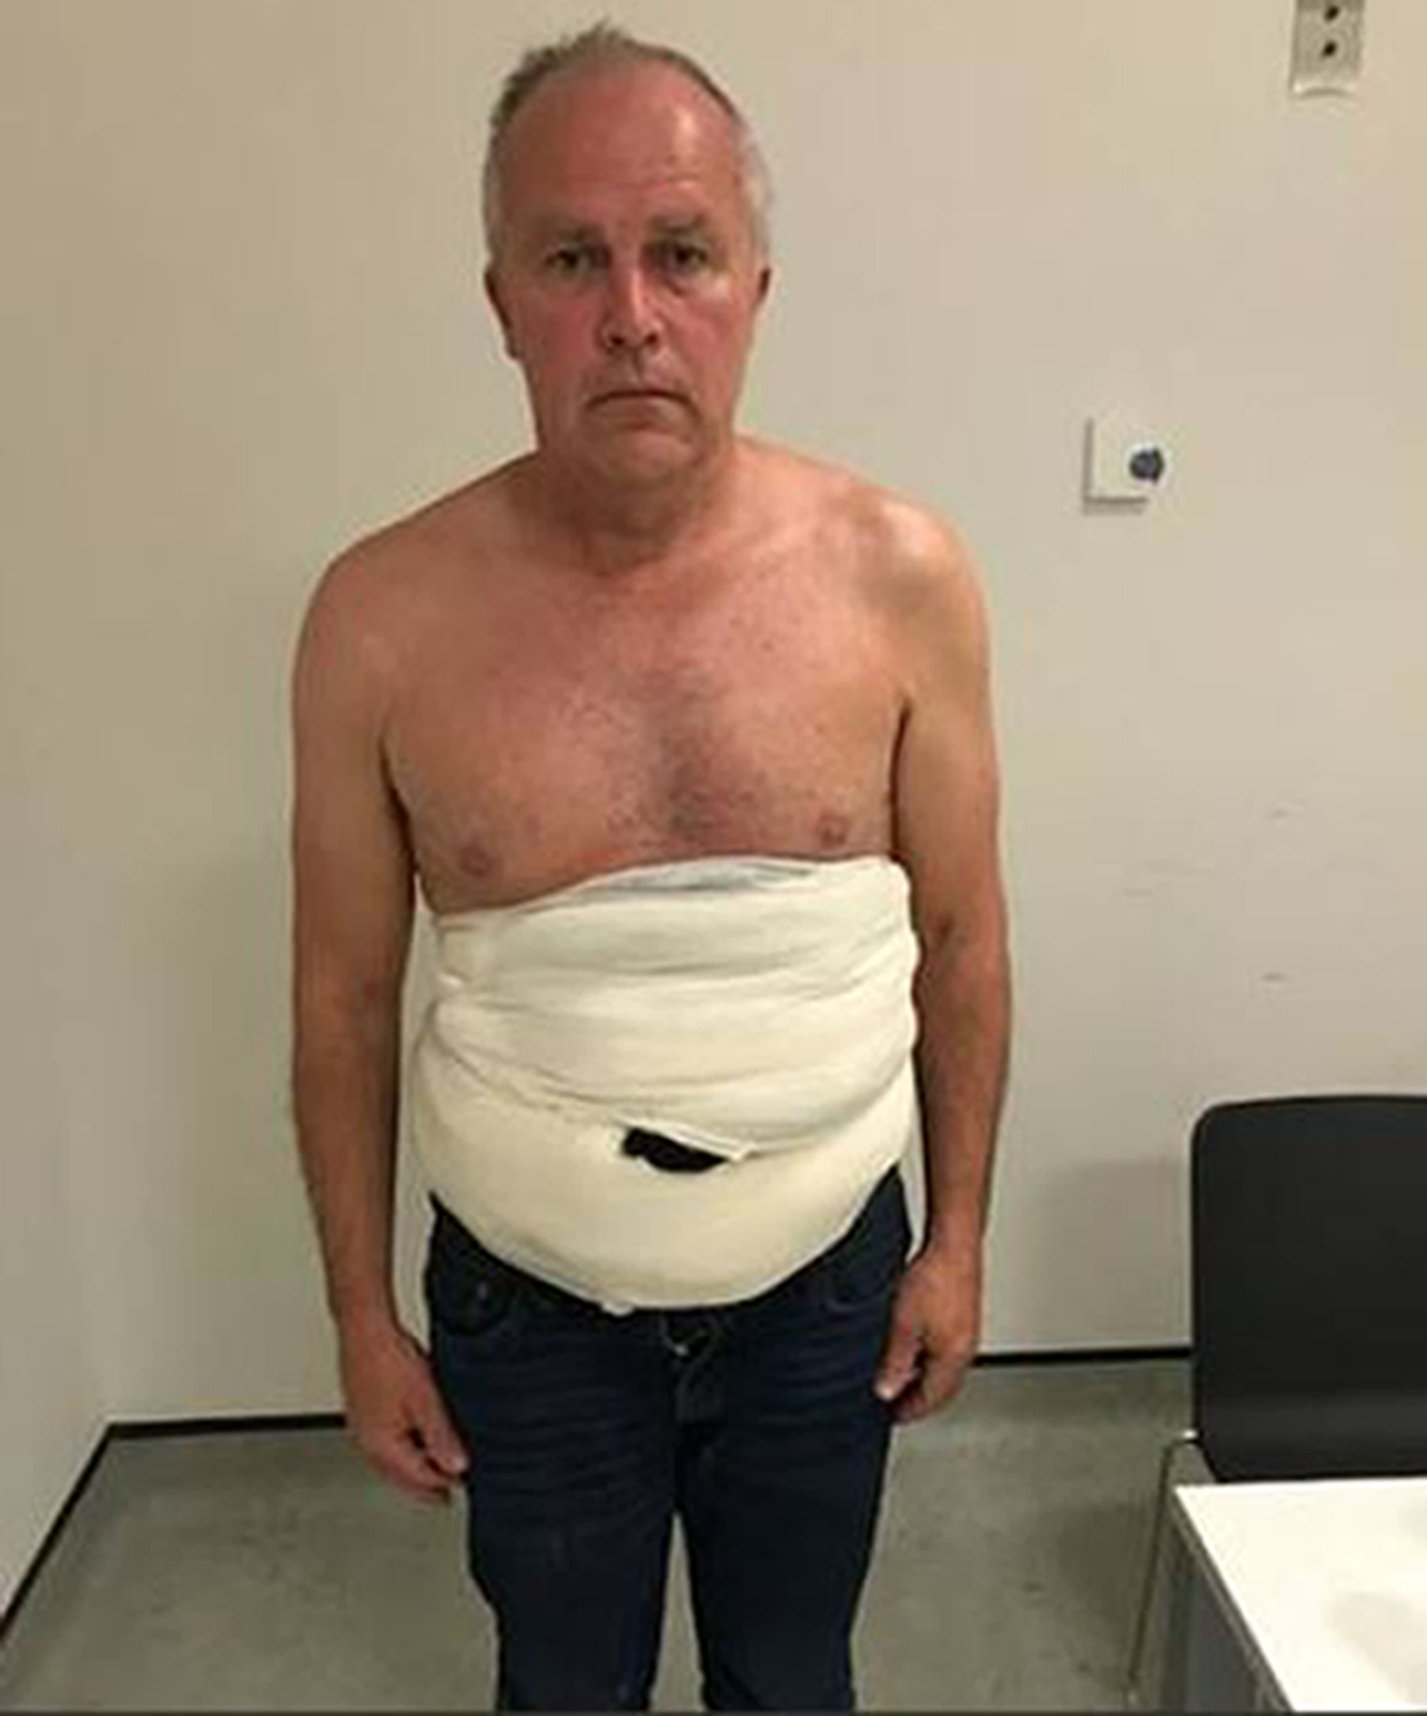 Crown Prosecution Service undated handout photo of Jeffrey Lendrum after he caught with the eggs strapped to his body by a sling hidden underneath a heavy coat at Heathrow airport on 26 June 2018. The prolific smuggler was handed a jail term of three years and one month on Thursday after he pleaded guilty to four offences on the second day of his trial at Snaresbrook Crown Court. PRESS ASSOCIATION Photo. Issue date: Thursday January 10, 2019. See PA story COURTS Eggs. Photo credit should read: Crown Prosecution Service /PA Wire NOTE TO EDITORS: This handout photo may only be used in for editorial reporting purposes for the contemporaneous illustration of events, things or the people in the image or facts mentioned in the caption. Reuse of the picture may require further permission from the copyright holder.